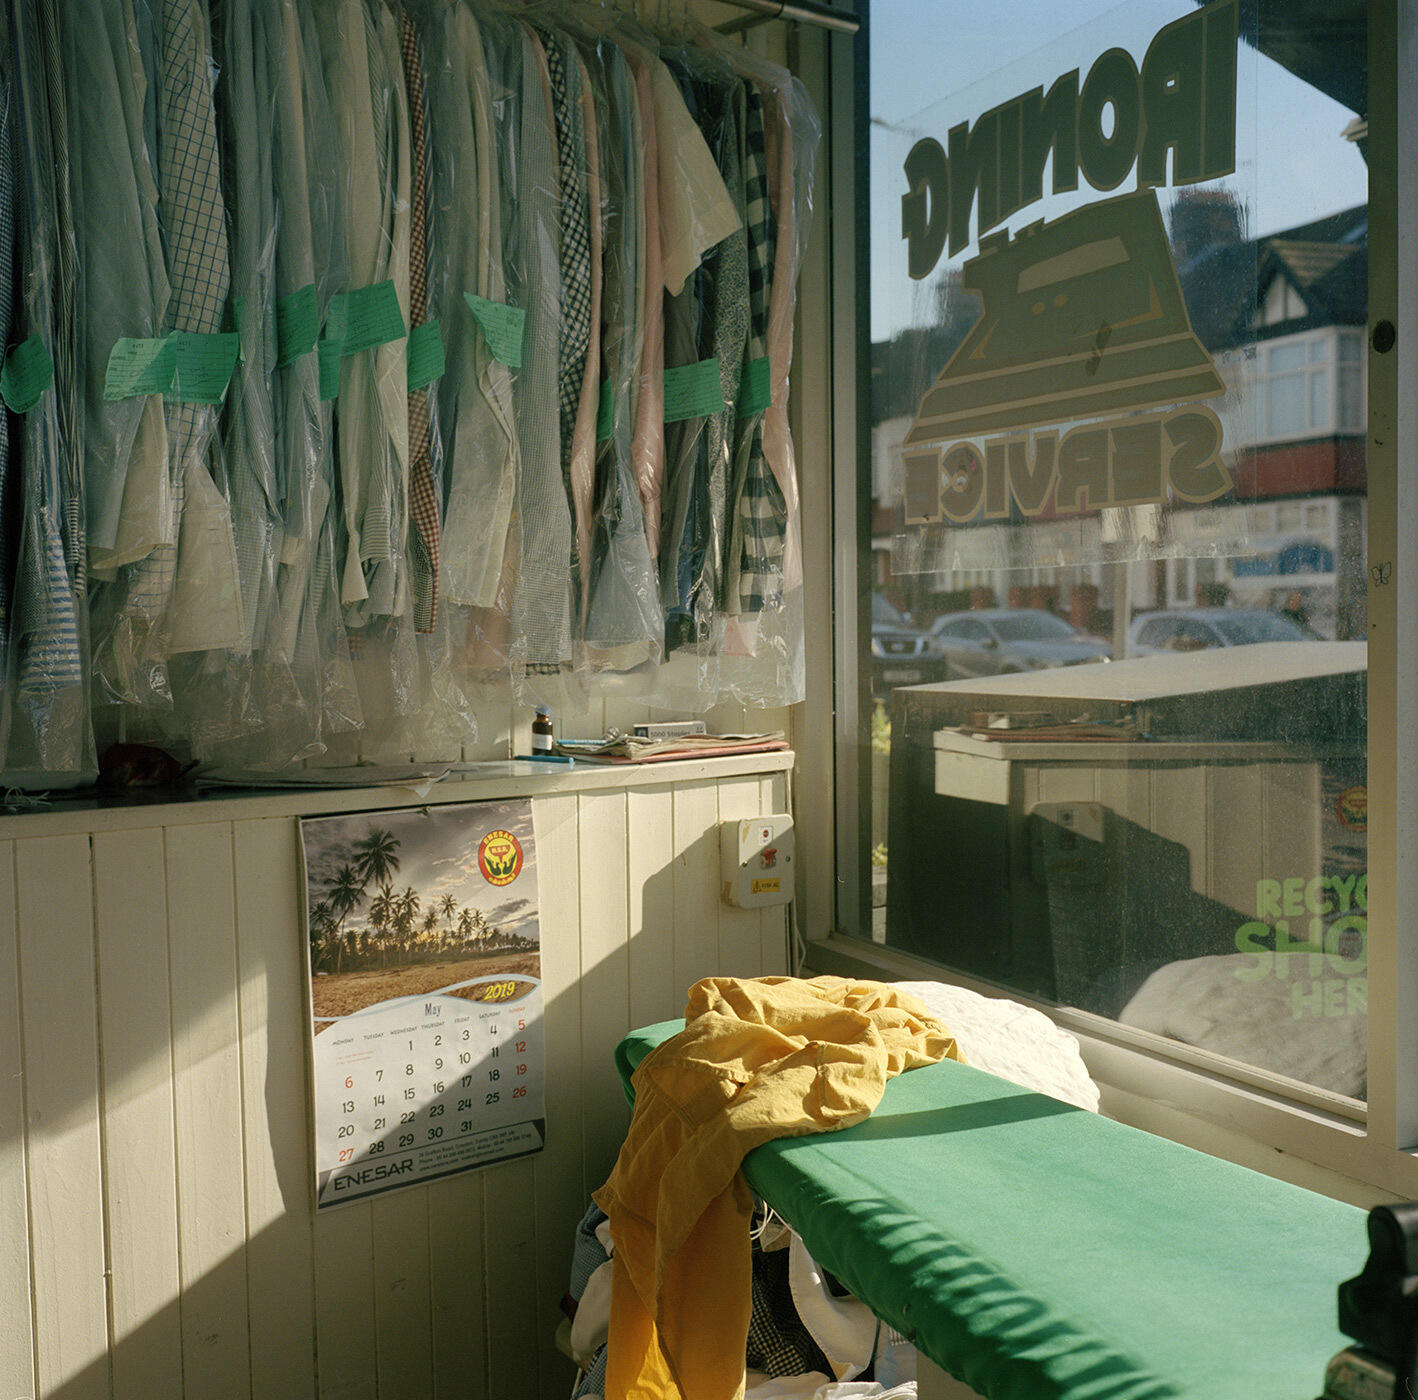 Ironing Service, South London - 2019